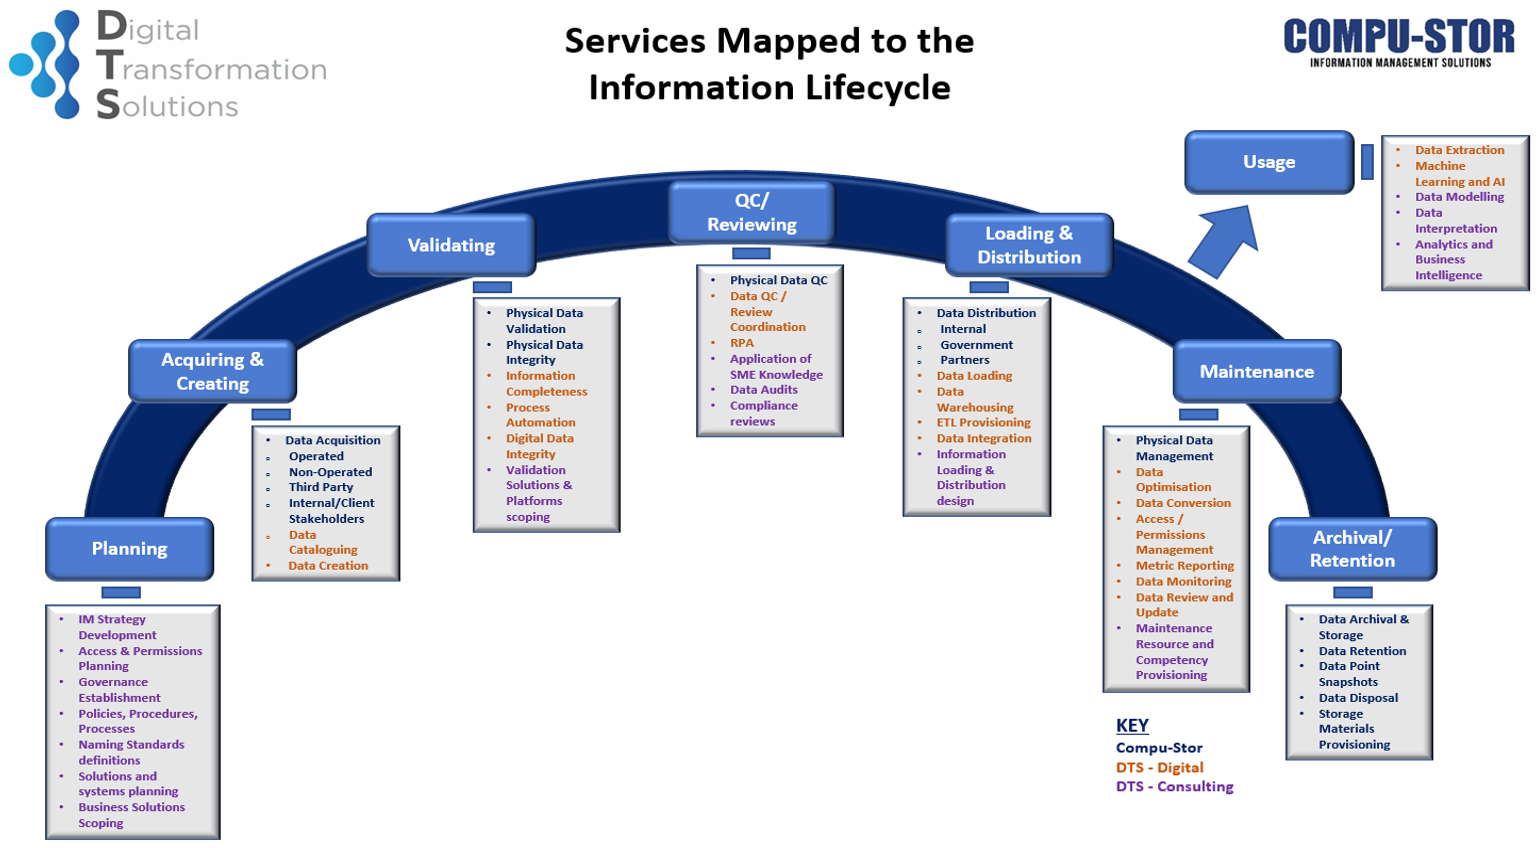 Consulting Services Mapped to Info Lifecycle